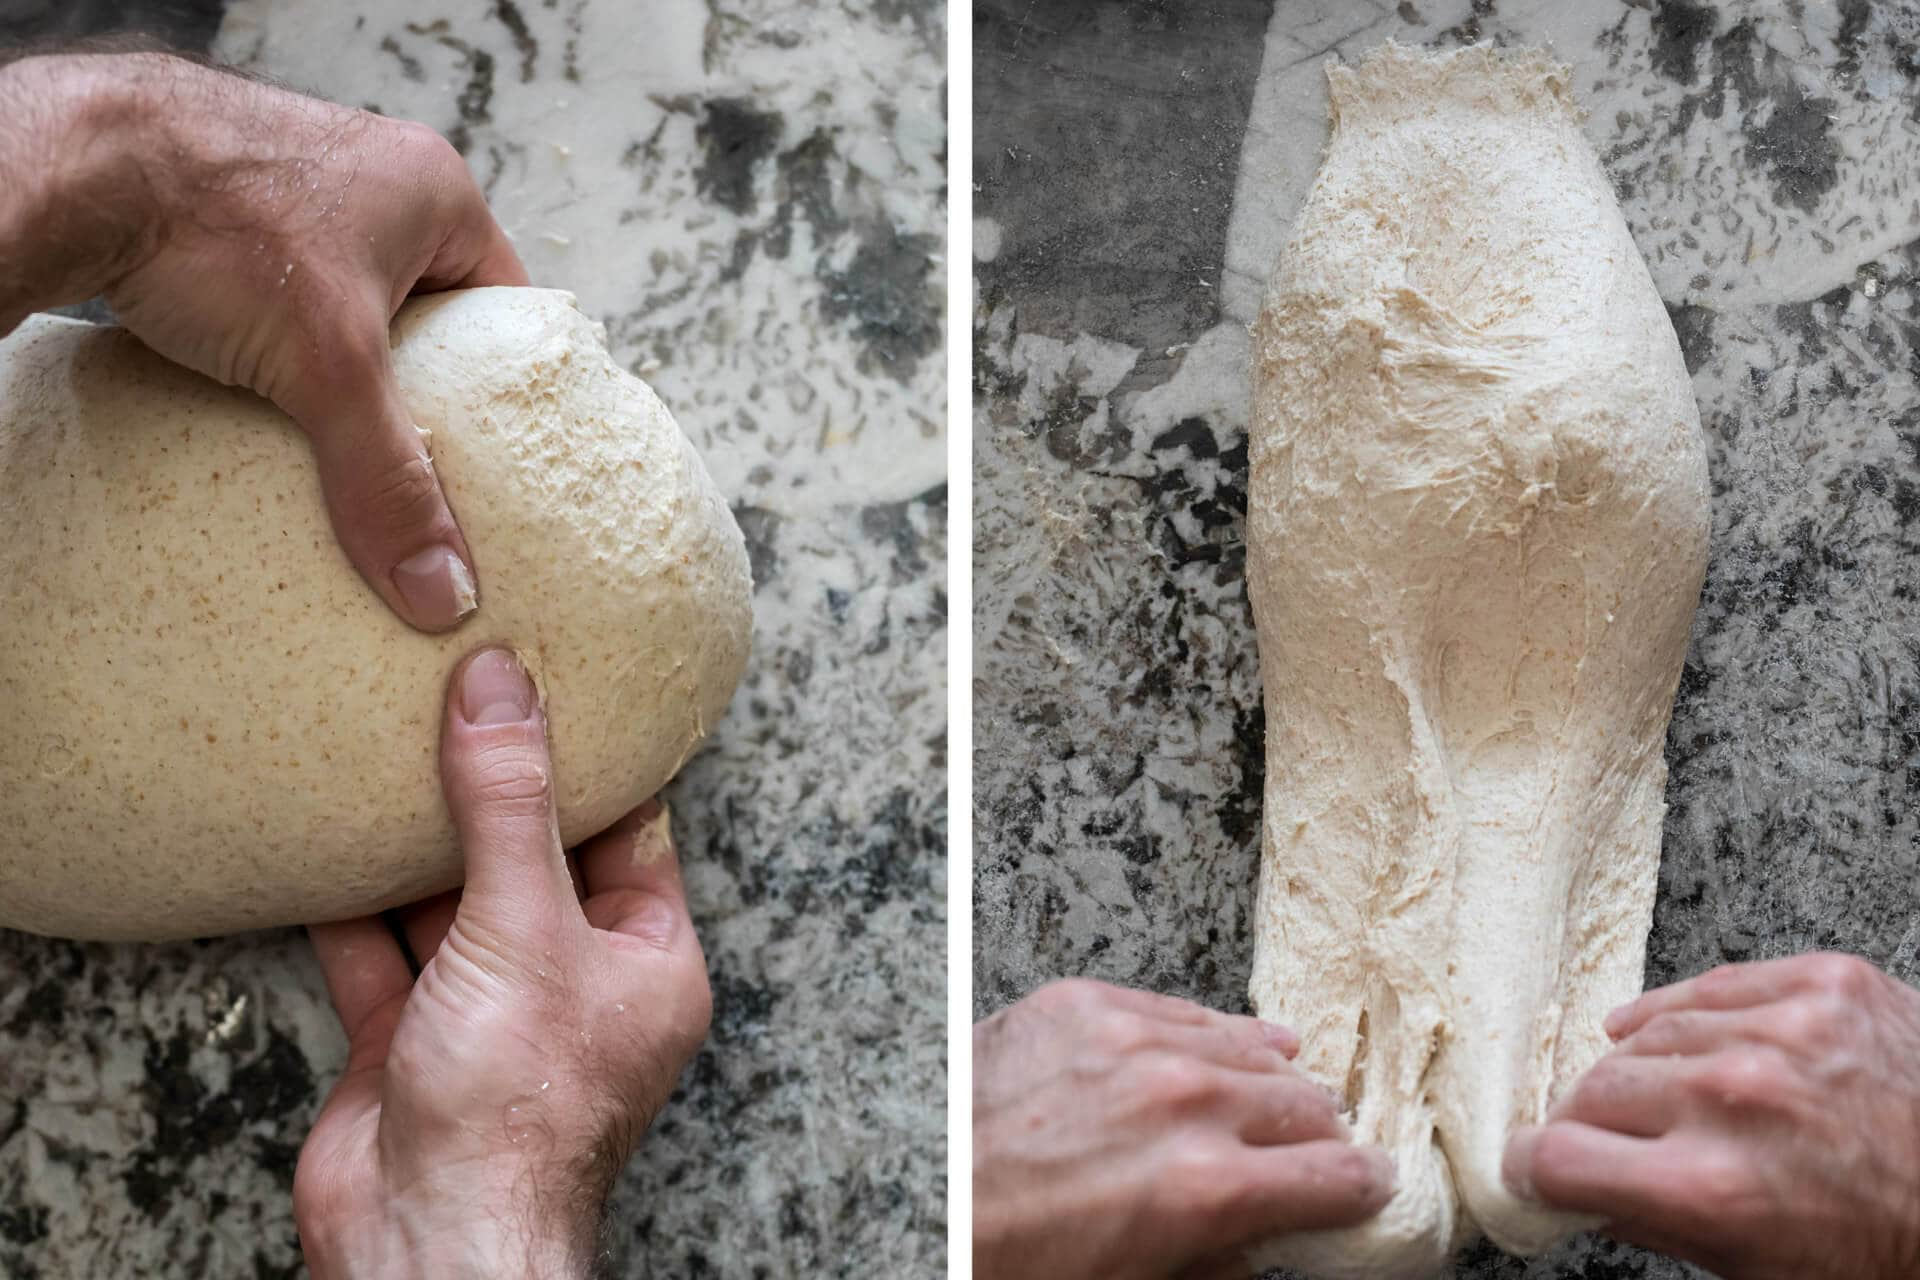 Slap and fold: picking up the dough and slapping down on the counter